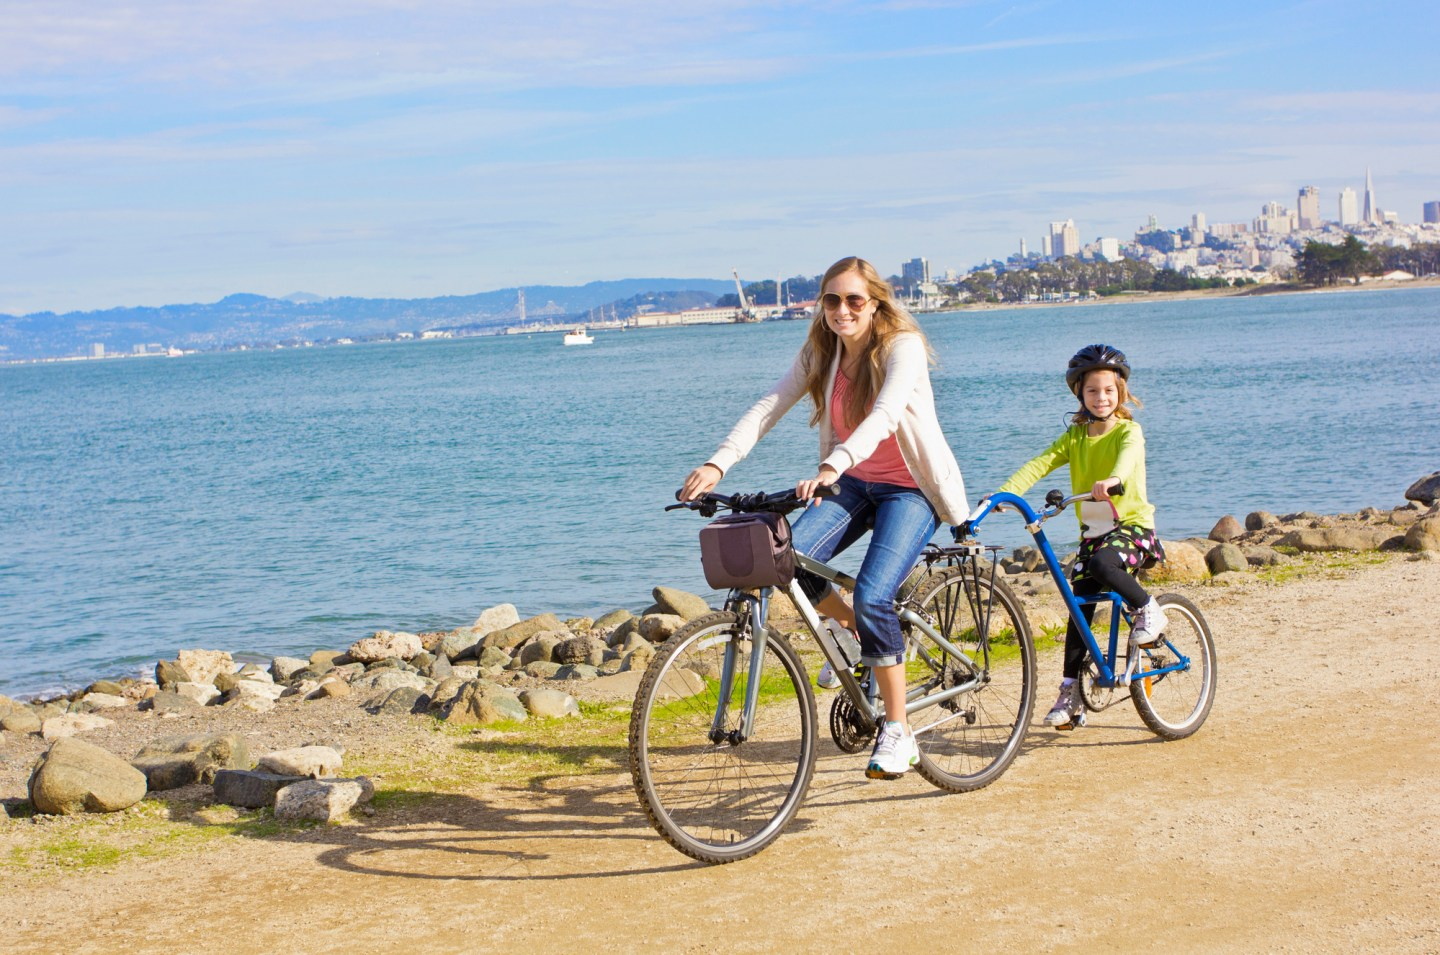 Family Bike Vacay: Choosing the right bicycle gear for travelling with kids with a tag along